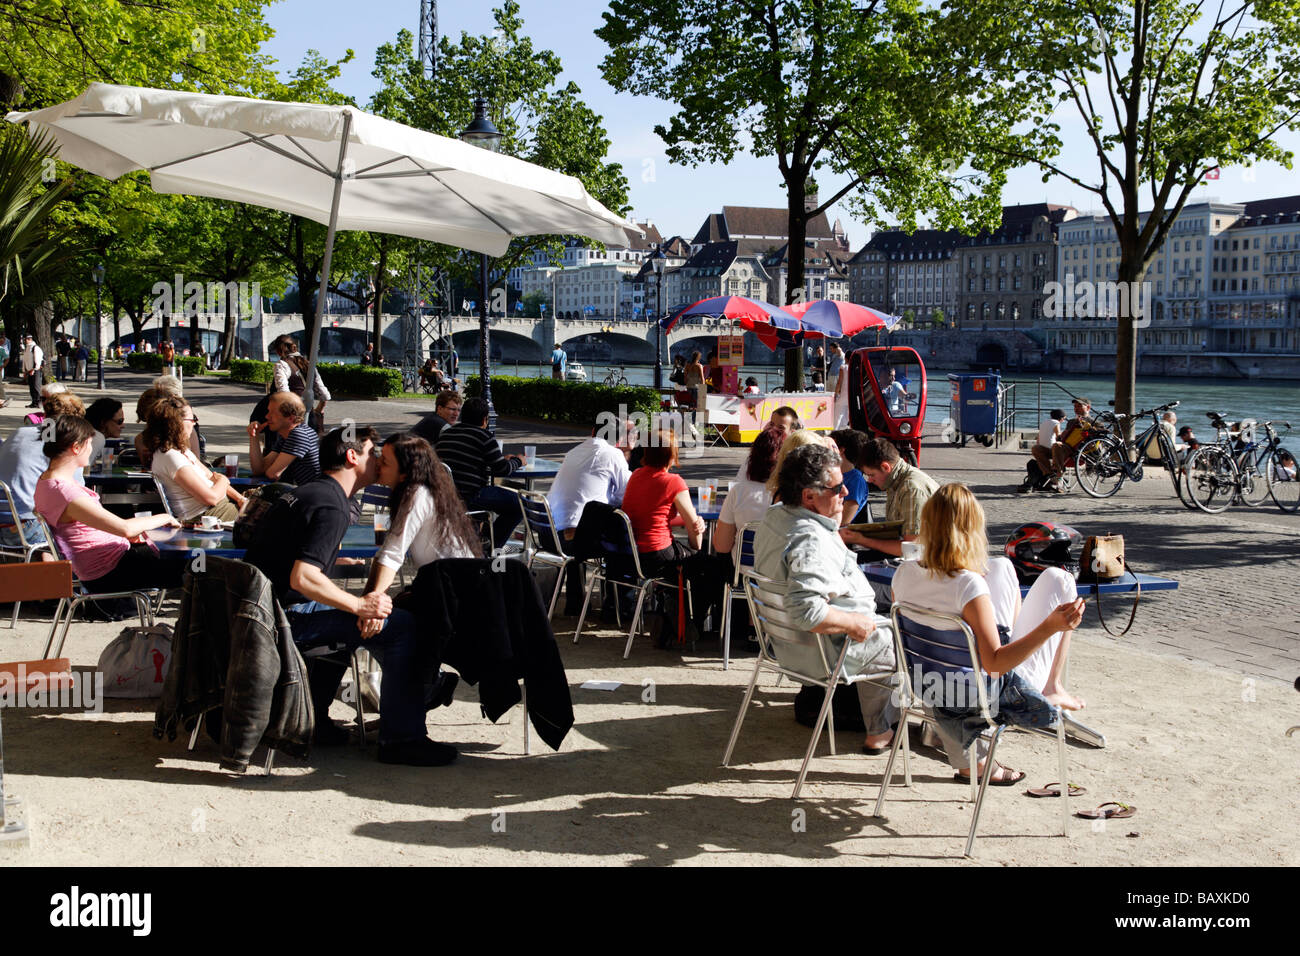 People at a cafe along the banks of the River Rhine, Riviera Klein-Basel, Basel, Switzerland - Stock Image